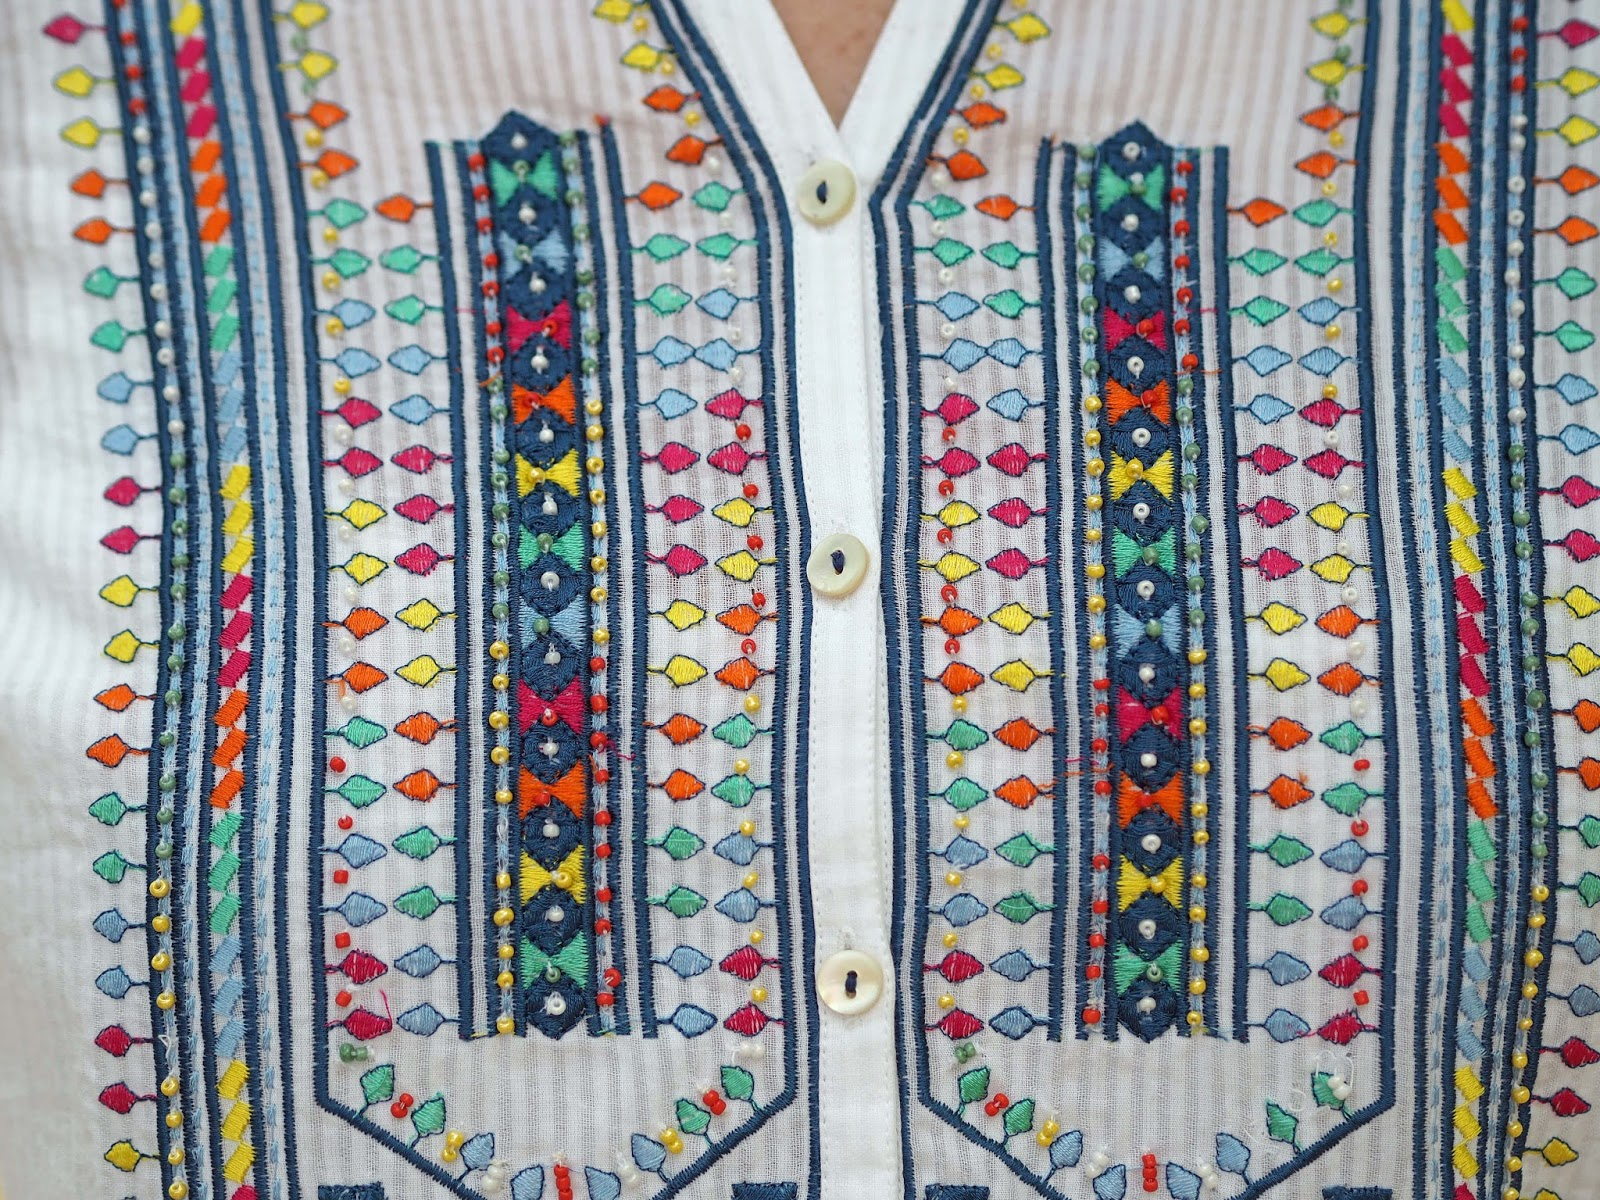 East shirt with multi-colored embroidery